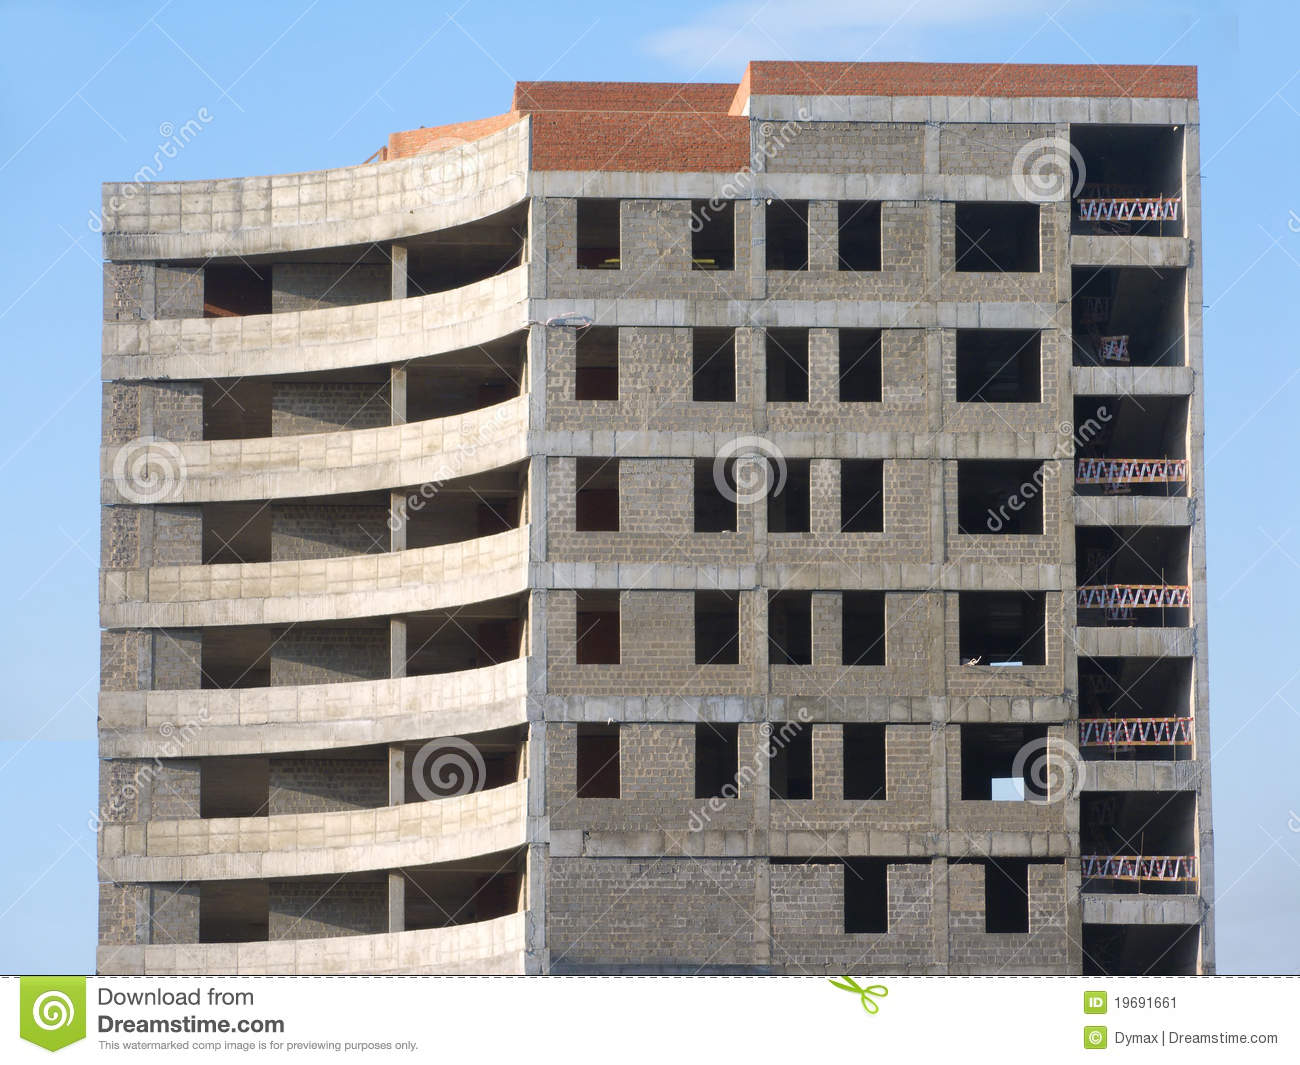 Concrete Building Construction : Building construction from concrete and bricks on stock